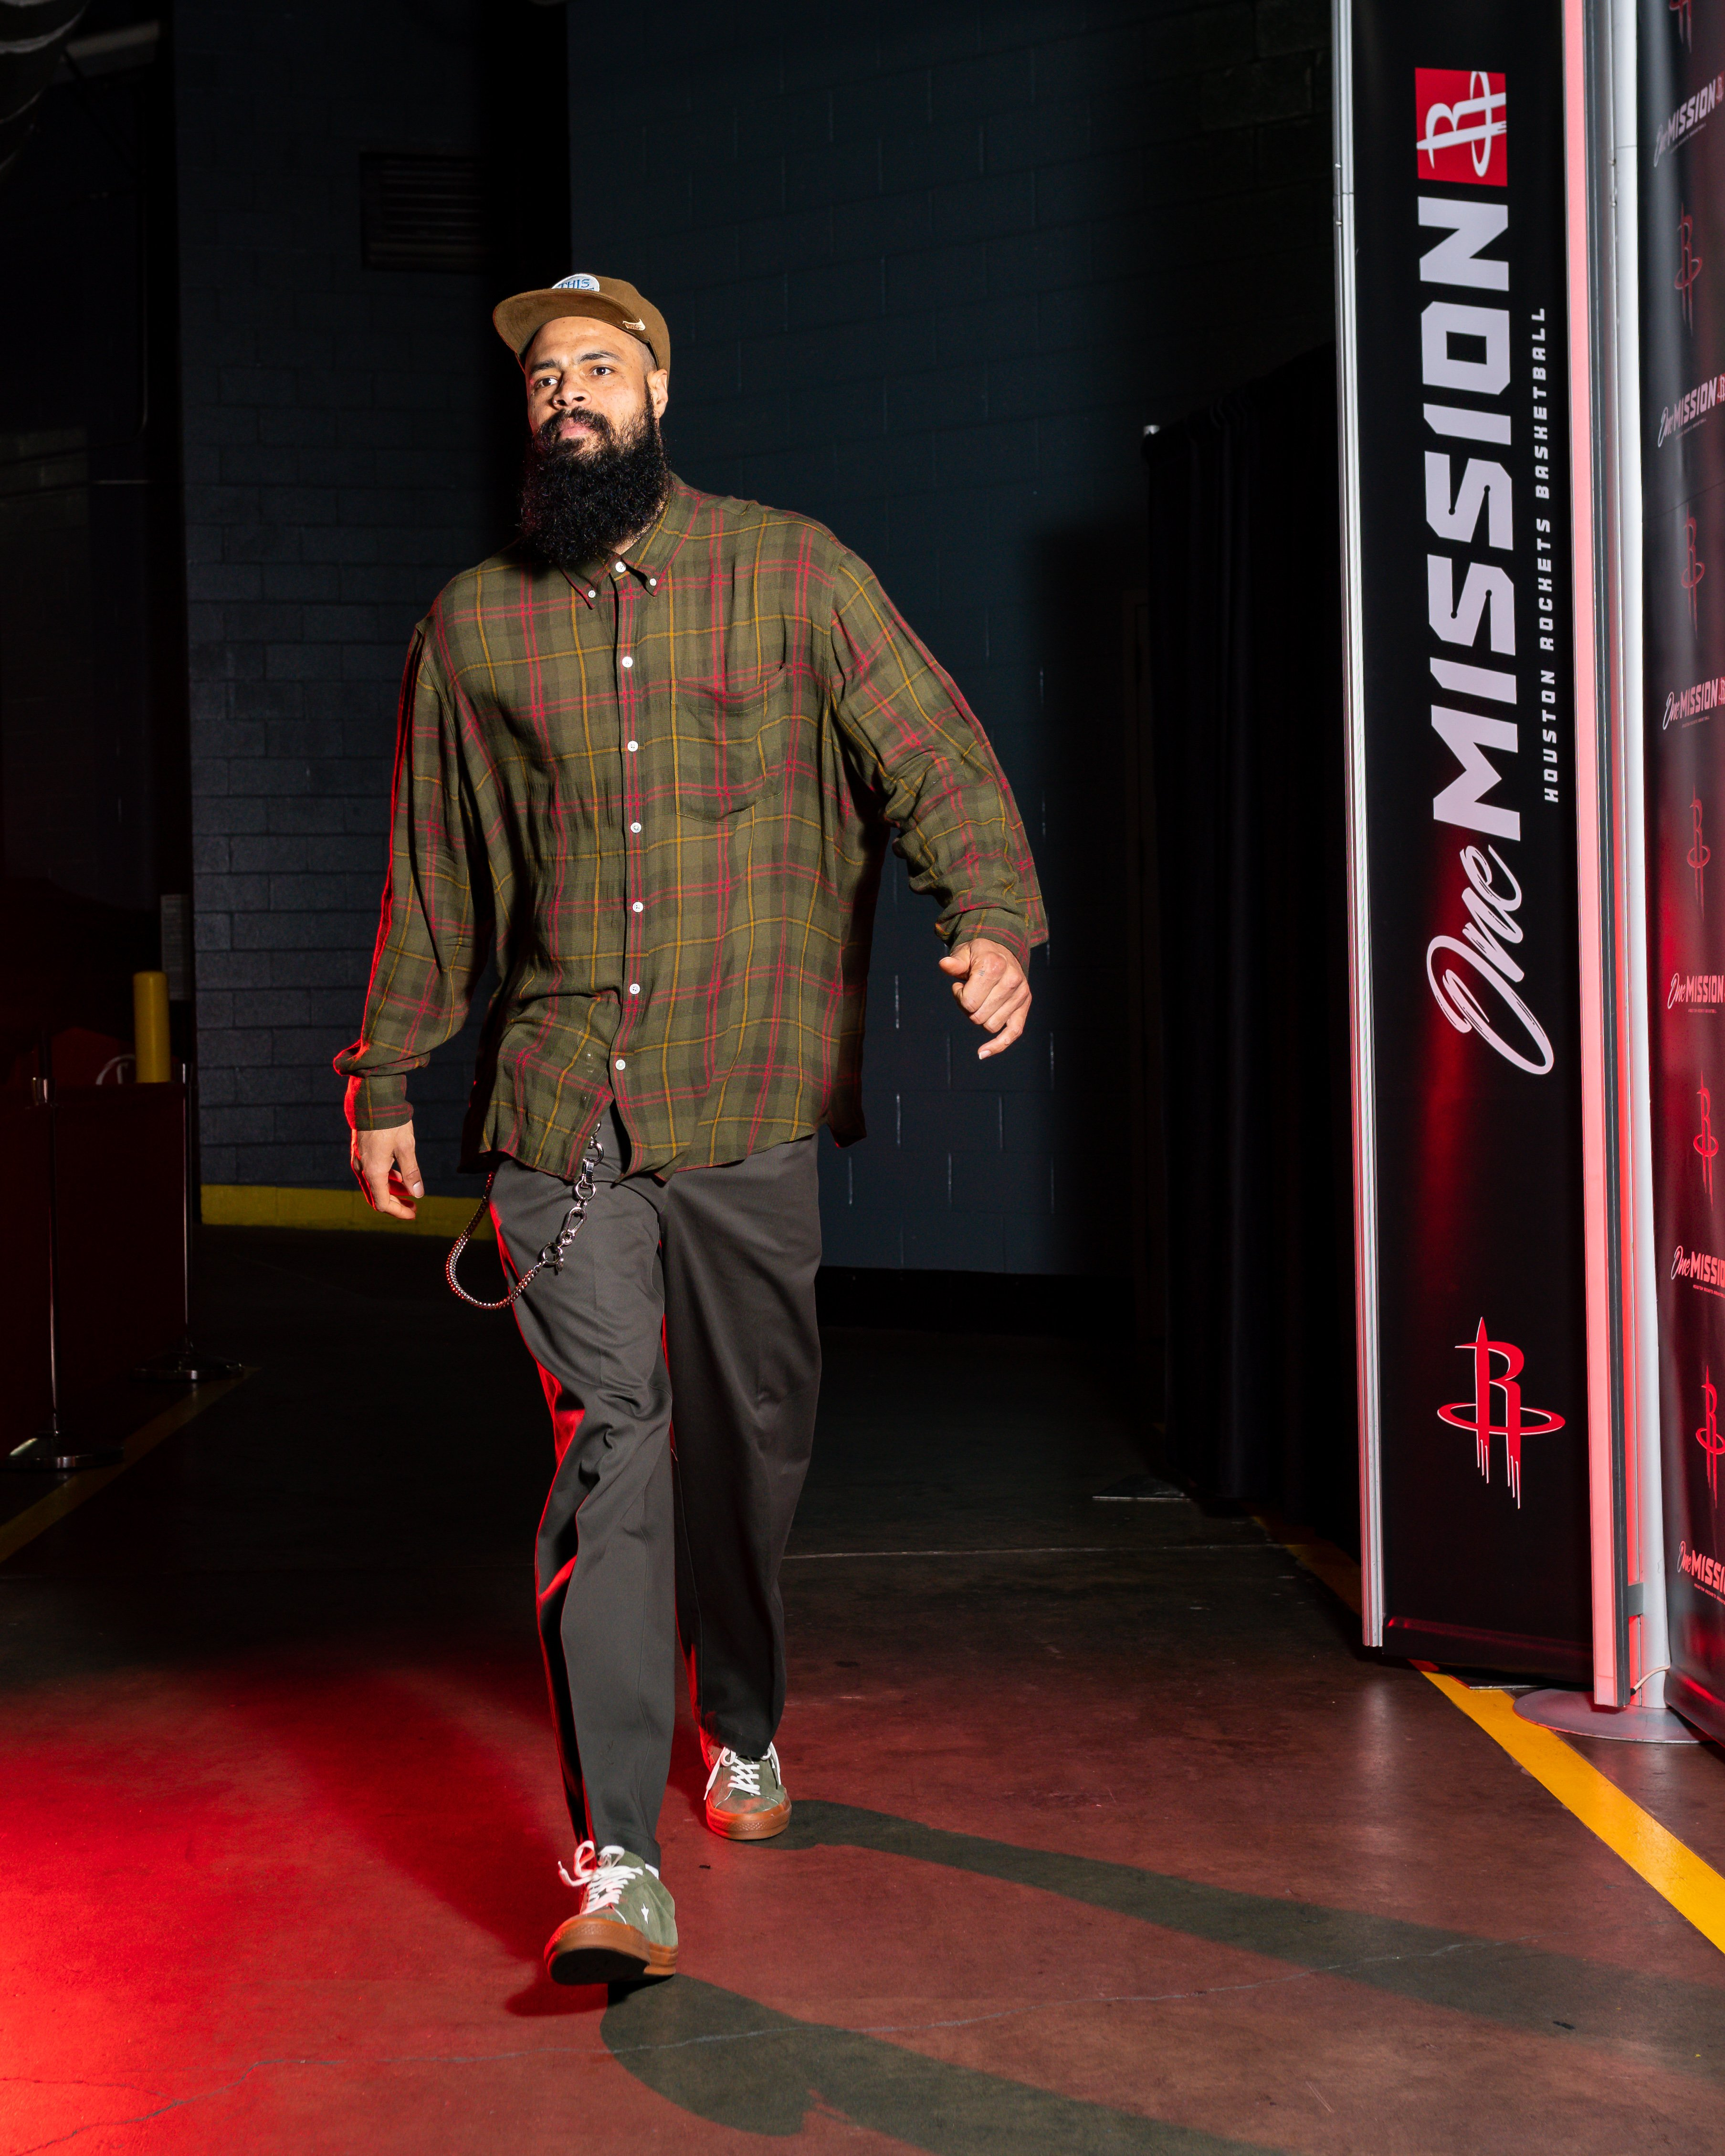 Tyson Chandler #19 of the Houston Rockets arrives to the game against the Charlotte Hornets on February 04, 2020 | Photo: Getty Images